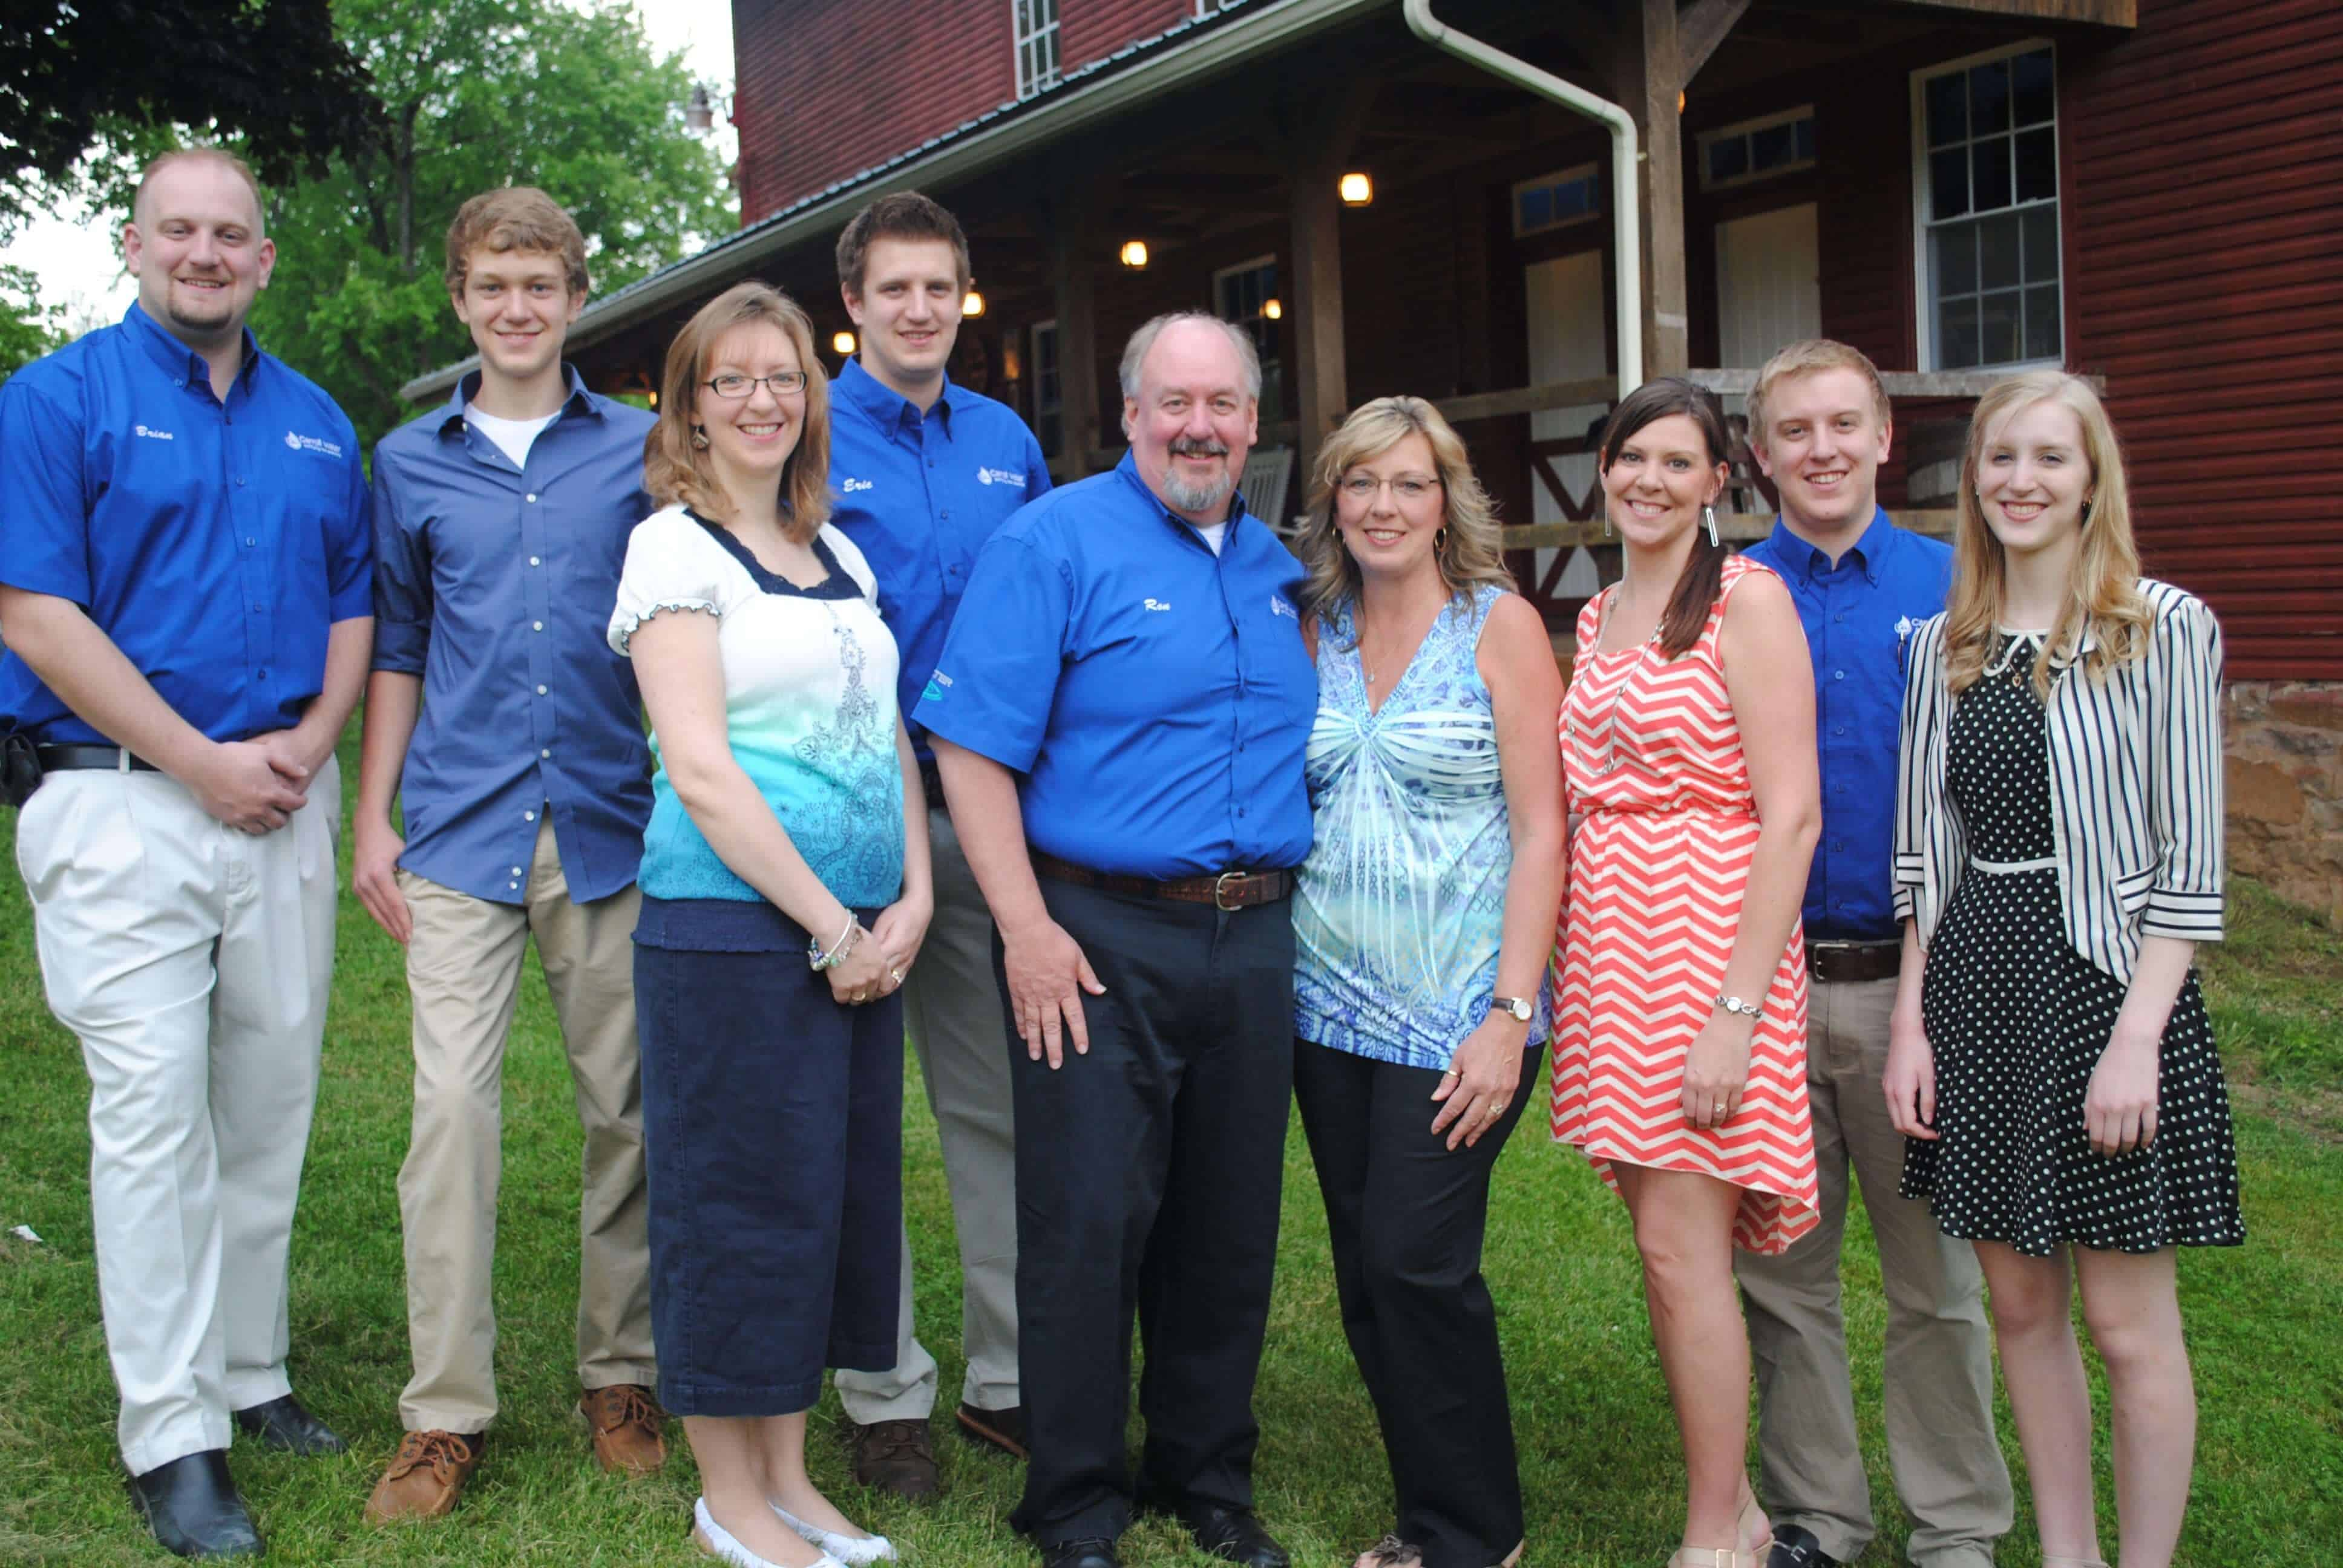 A second group photo of the Carroll Water Systems team.